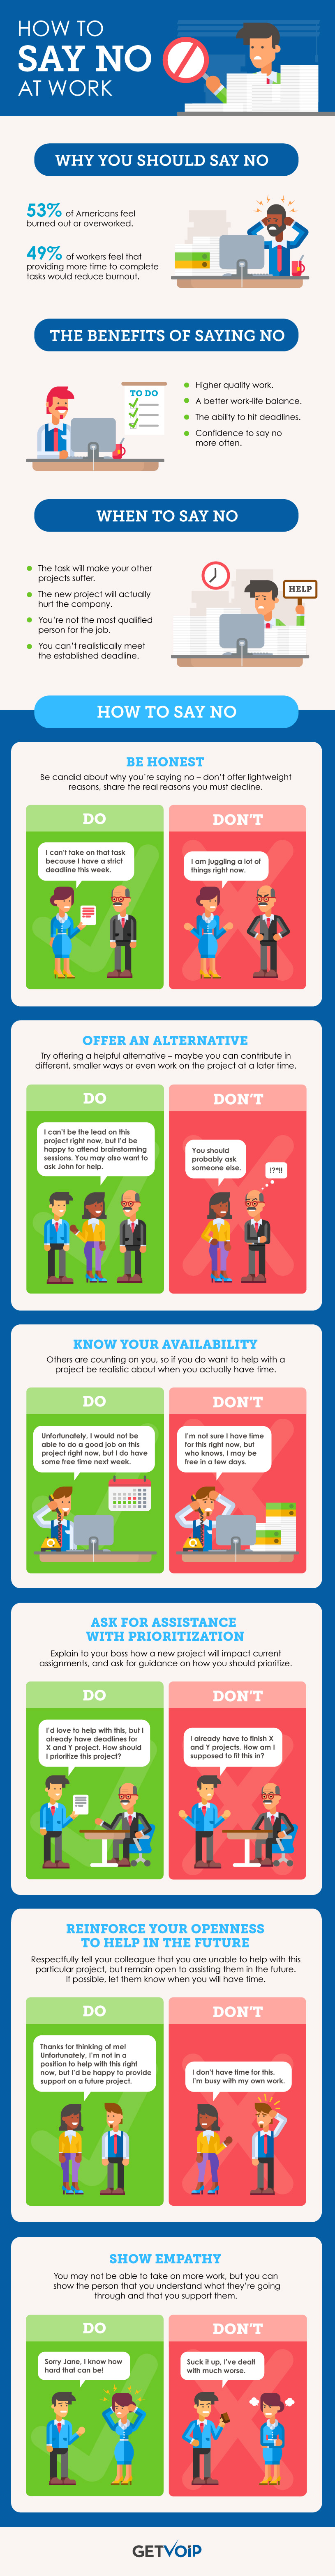 How To Say No At Work [Infographic]